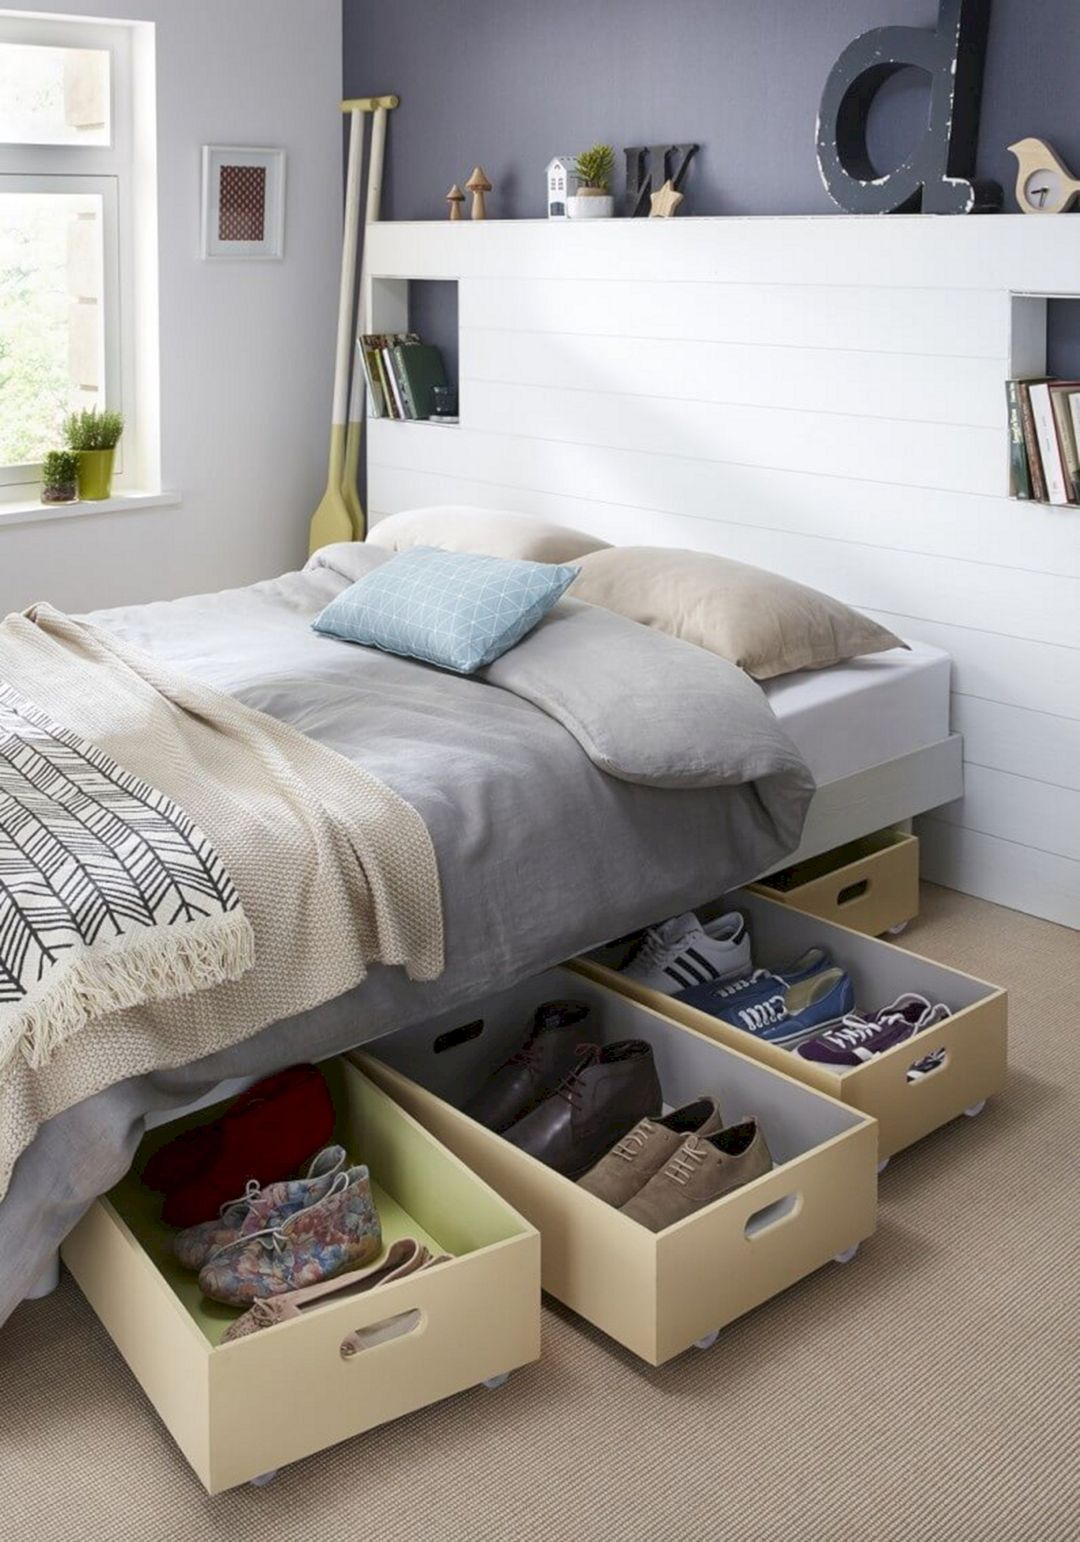 12 Amazing Bedroom Ideas With Unique Storage Design  Small